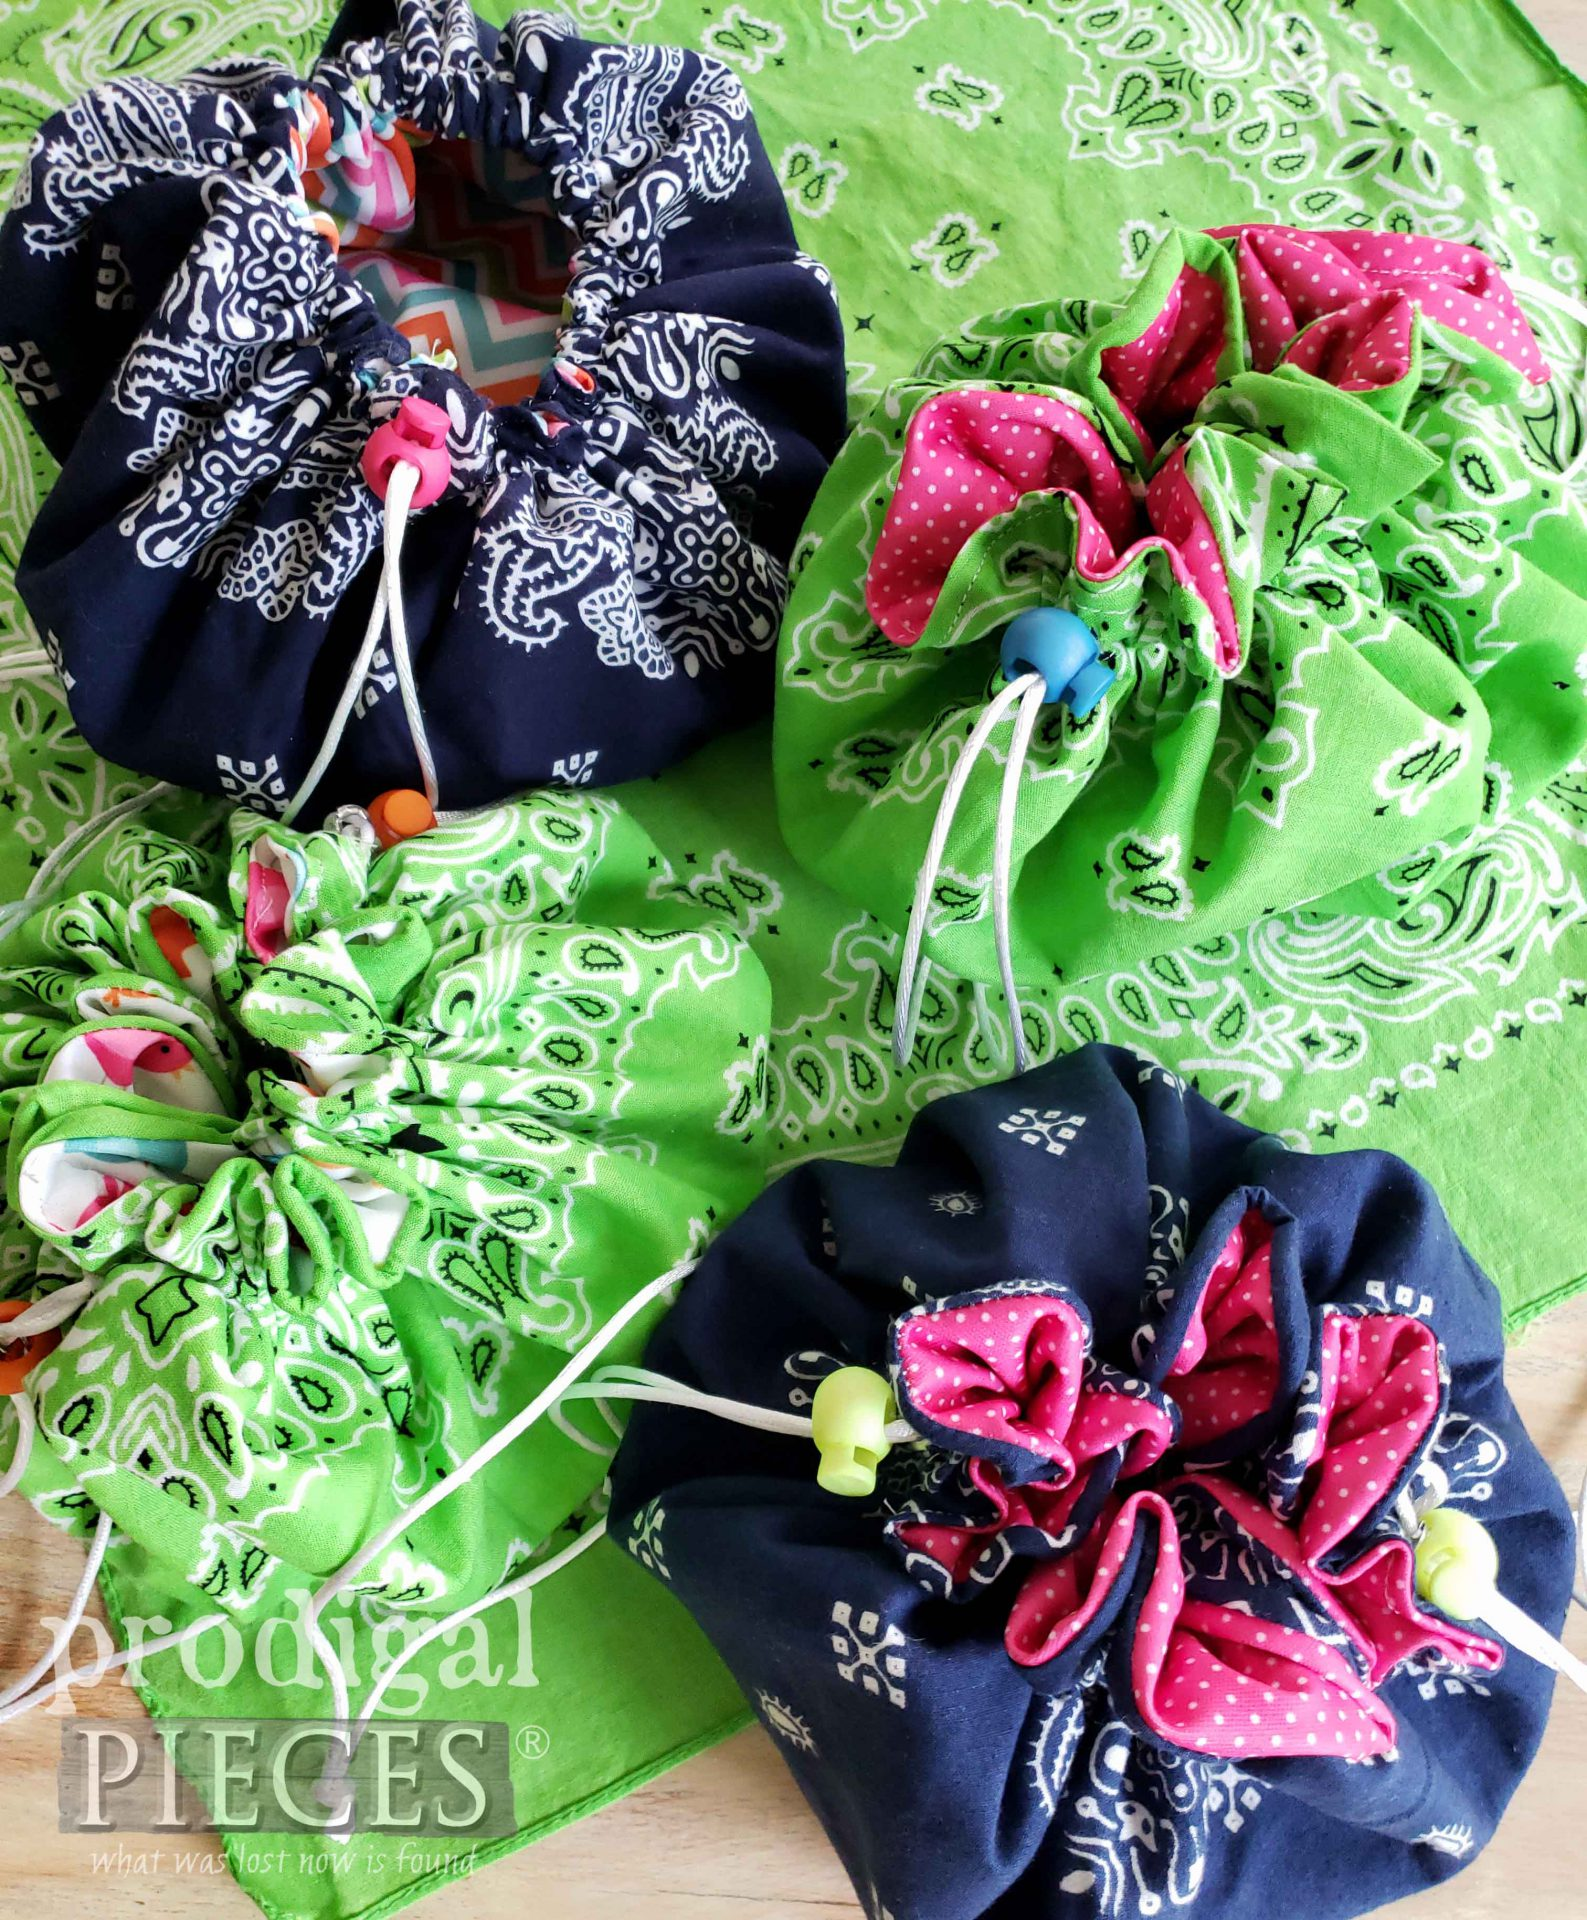 DIY Bandana Drawstring Bag with Video Tutorial by Larissa of Prodigal Pieces | prodigalpieces.com #prodigalpieces #diy #sewing #fashion #upcycle #refashion #handmade